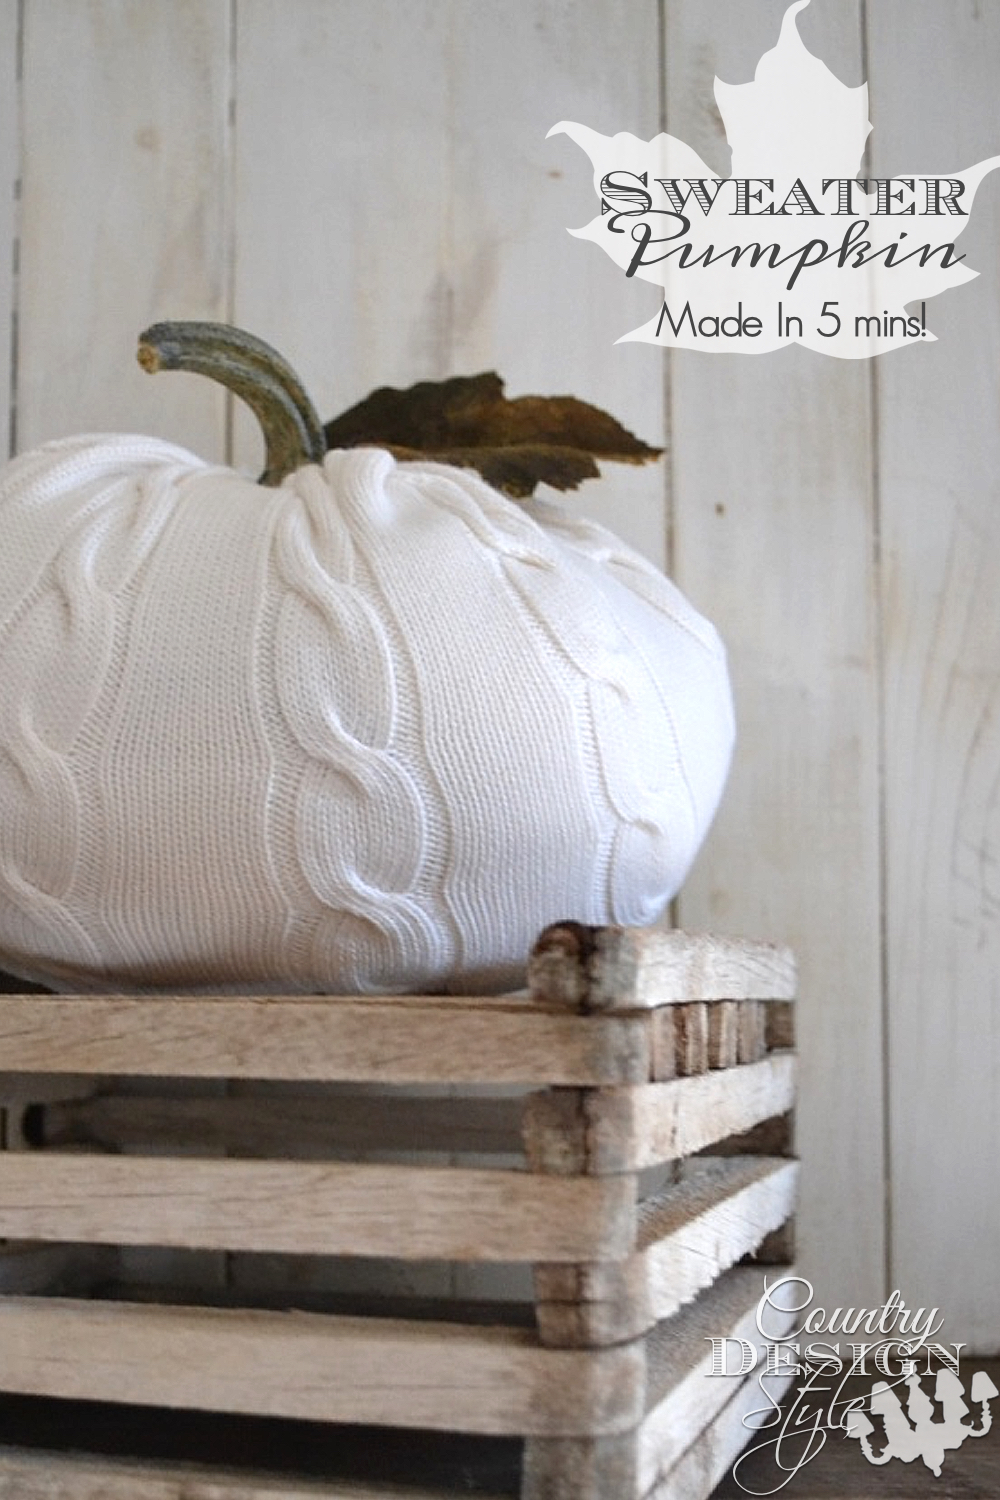 Make the sweater pumpkin in 5 minutes. Minute by minute tutorial on the website! Warm up your pumpkin Country Design Style www.countrydesignstyle.com